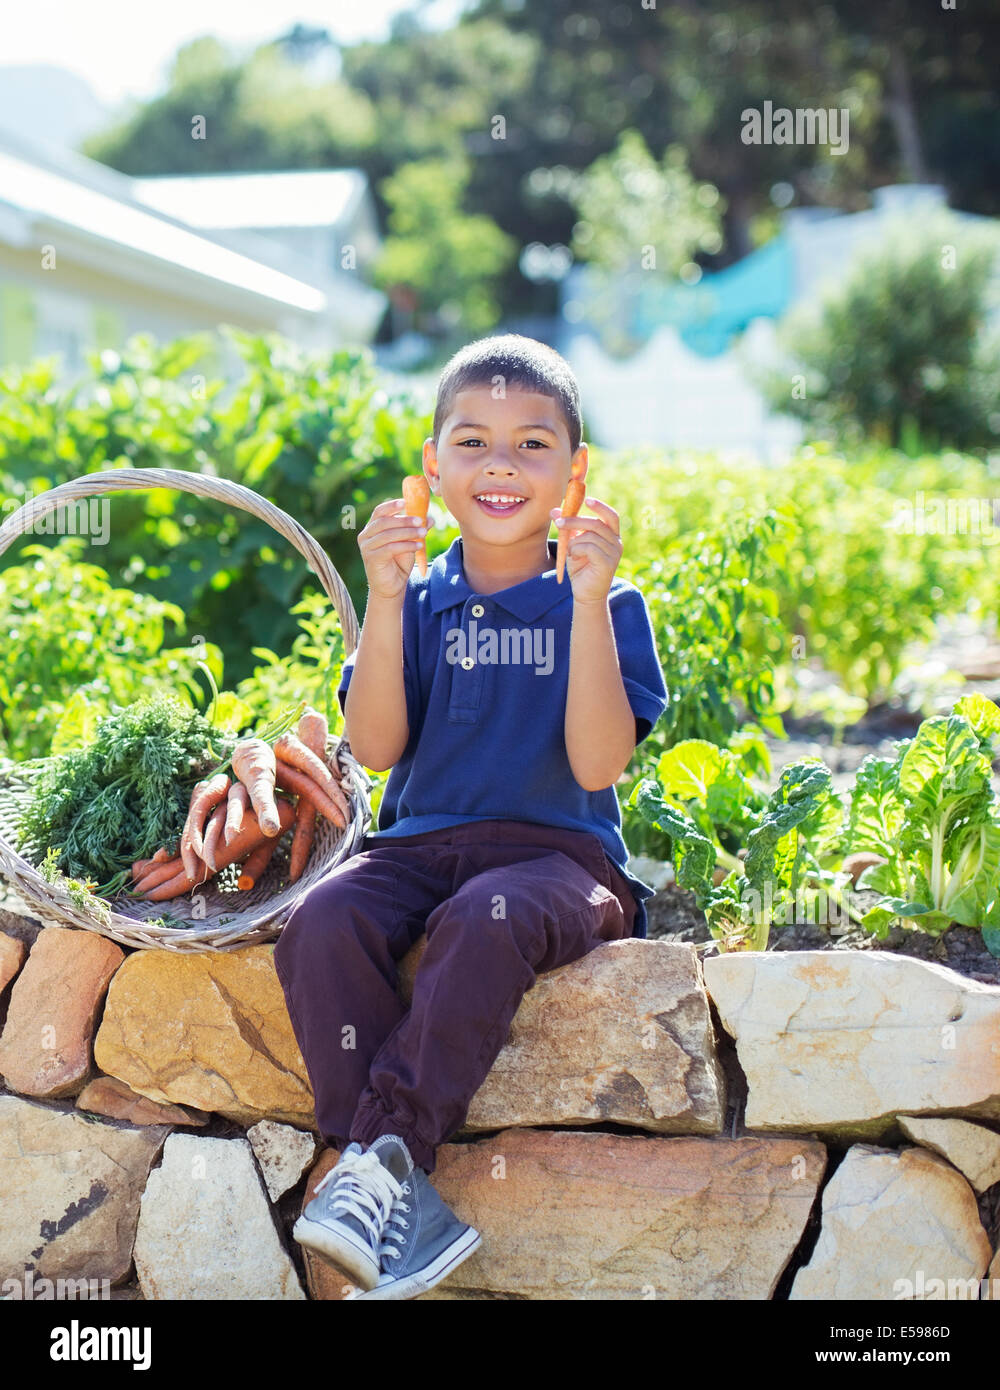 Boy with basket of produce in garden - Stock Image